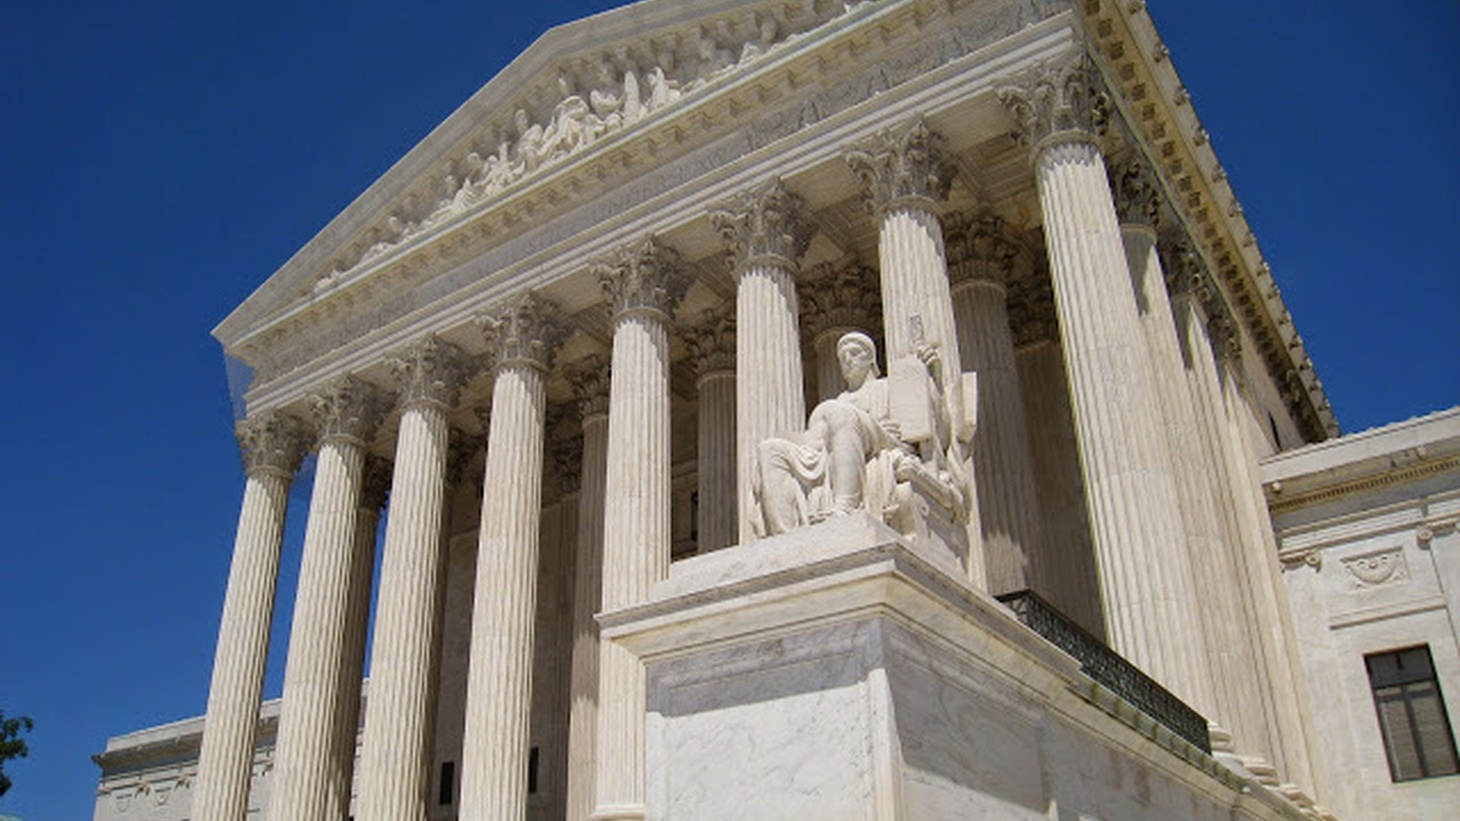 In a rare unanimous decision, the U.S. Supreme Court has rejected a proposal to redraw voting districts based on eligible voters. Why, and what does it mean for elections?